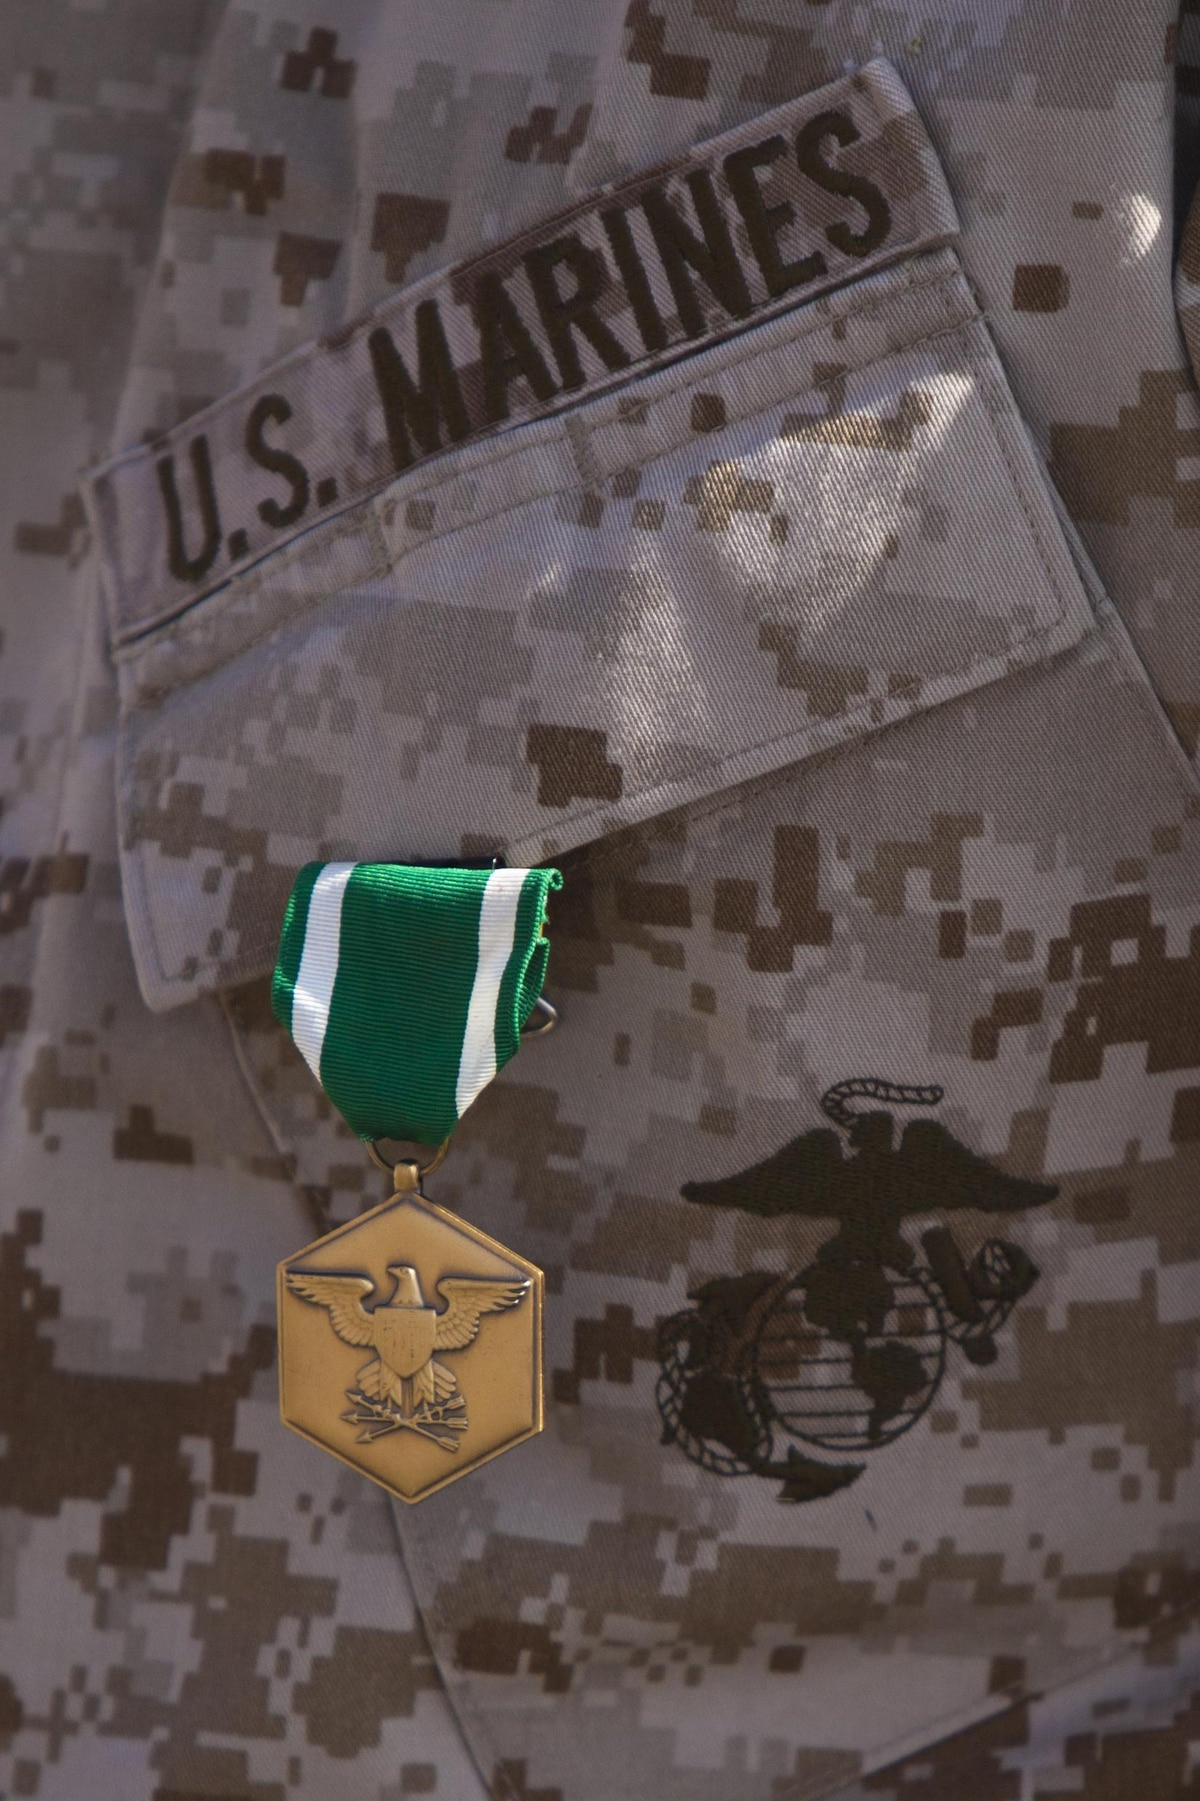 What you need to know about new commendation medal rules